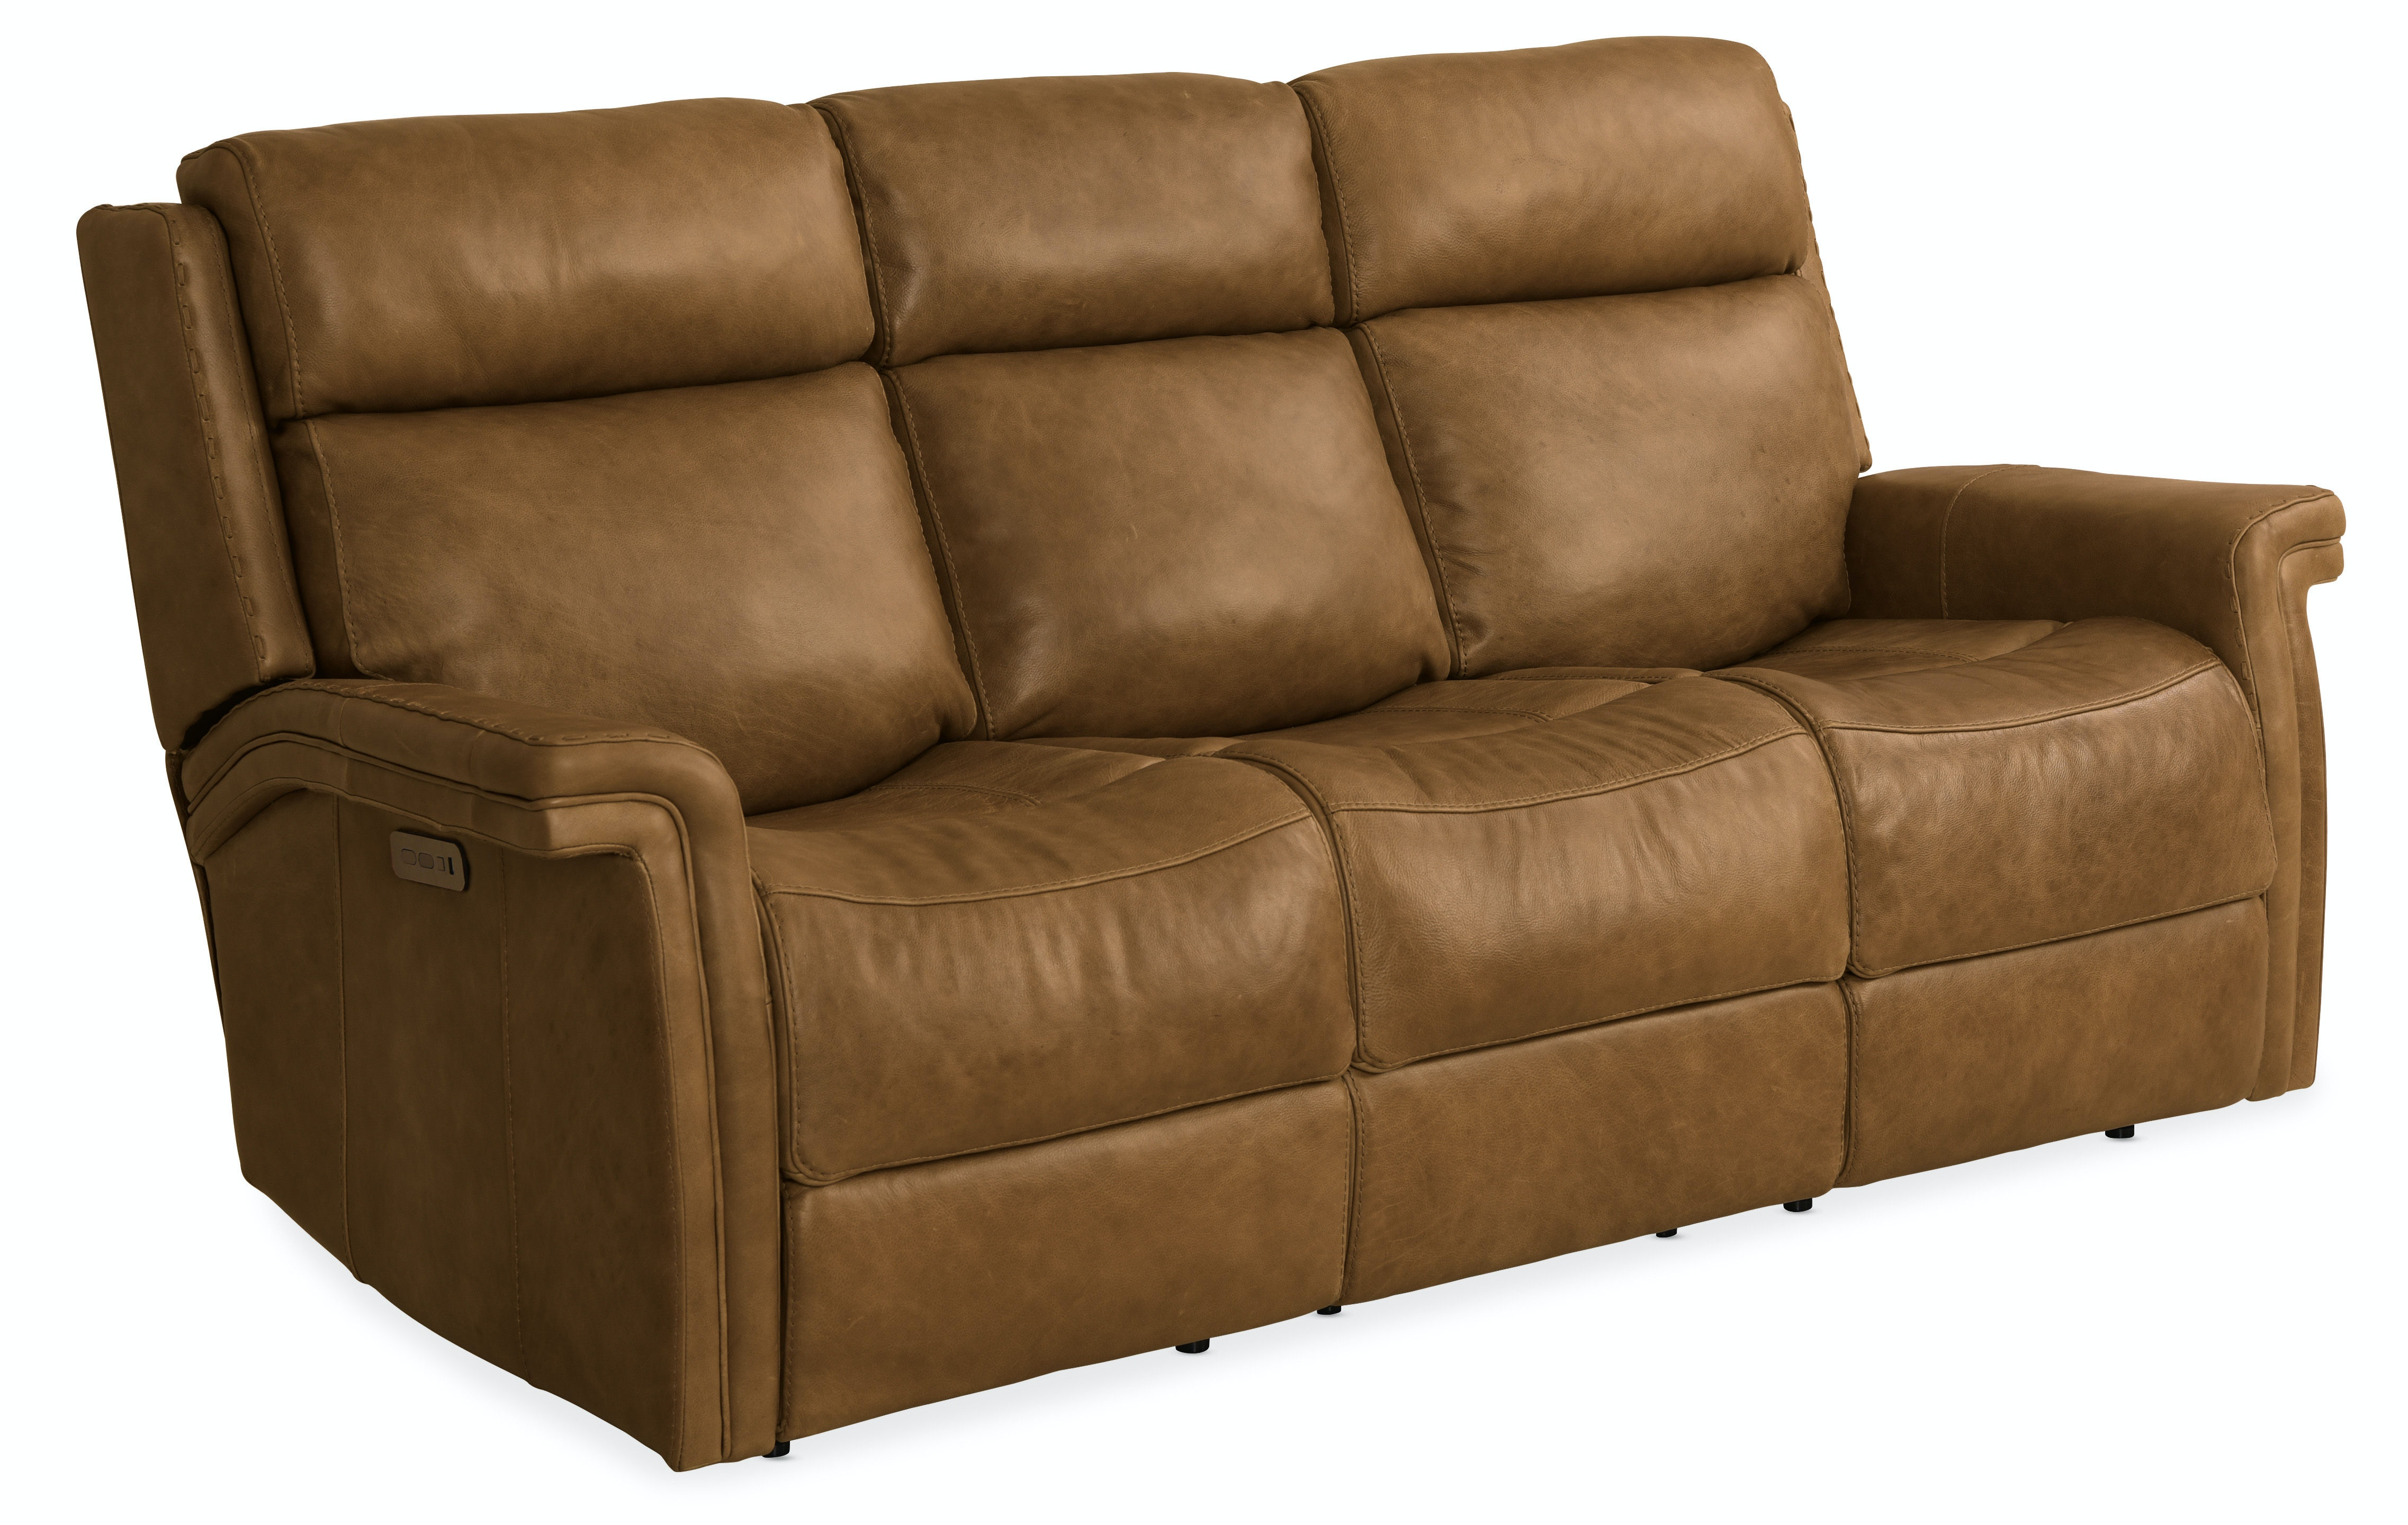 Hooker Furniture Living Room Poise Power Recliner Sofa W